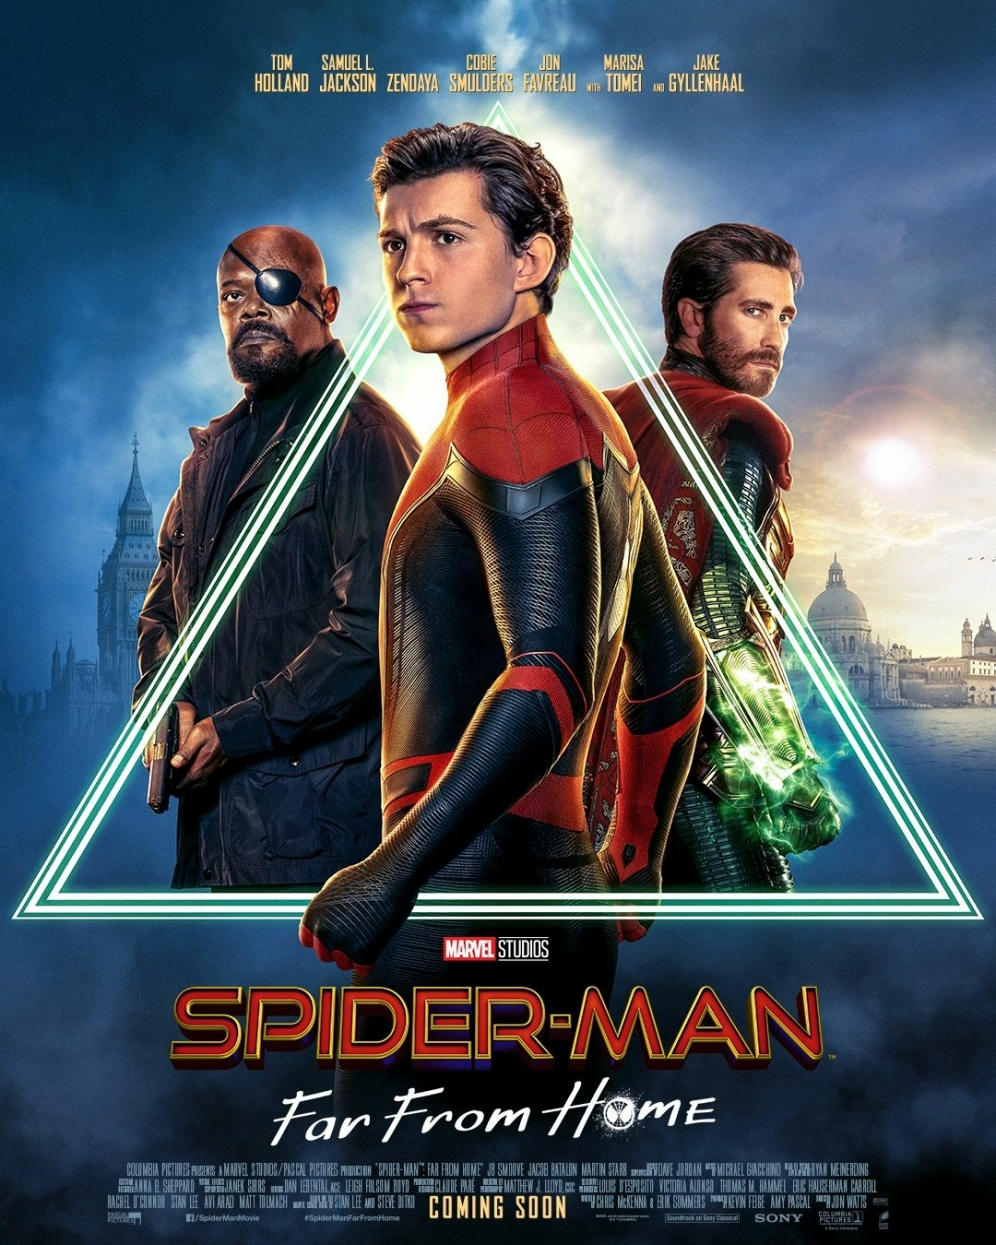 Far From Home | Jake Gyllenhaal